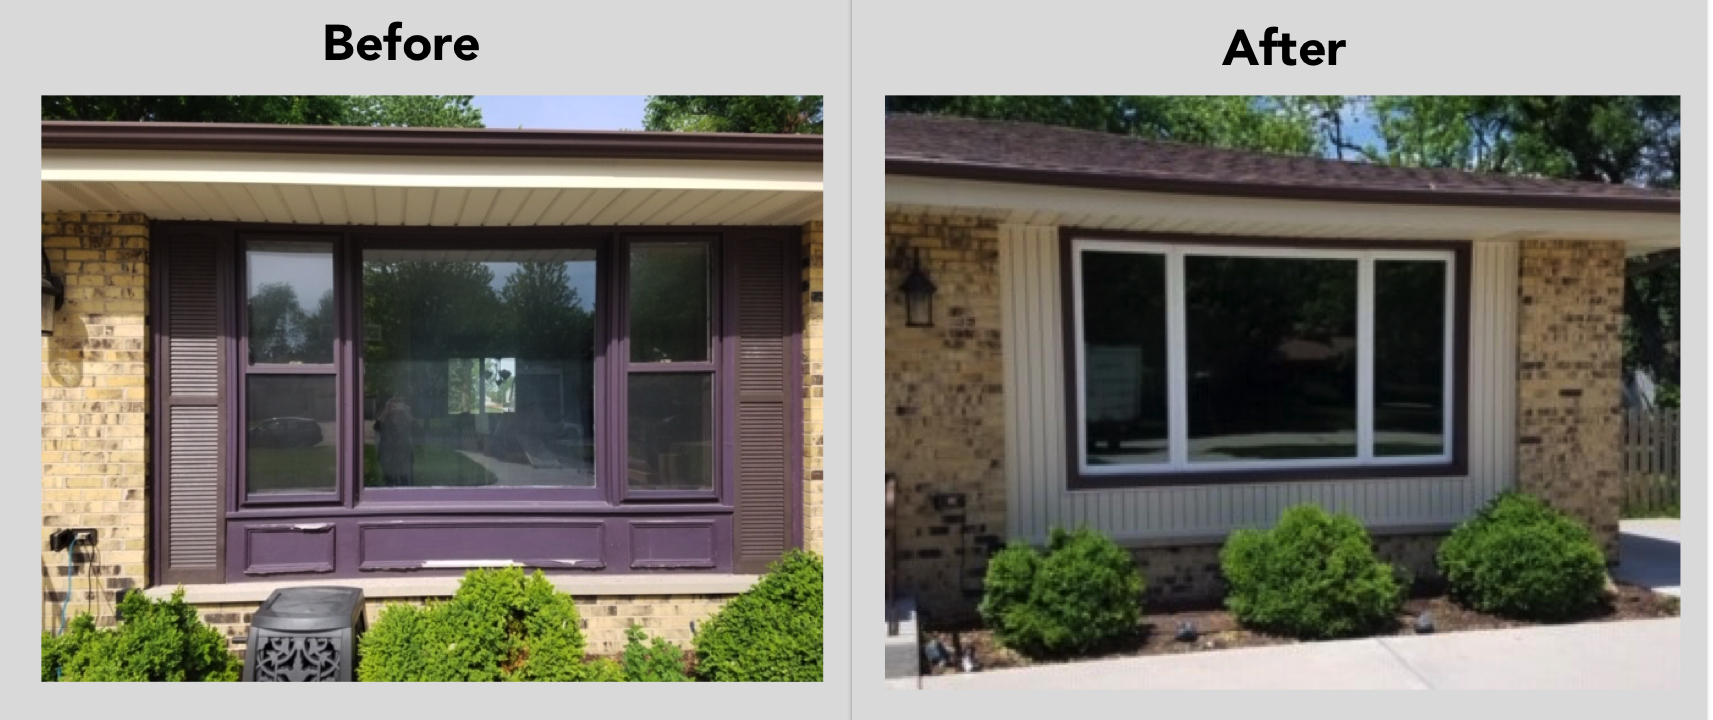 Naperville Windows Before